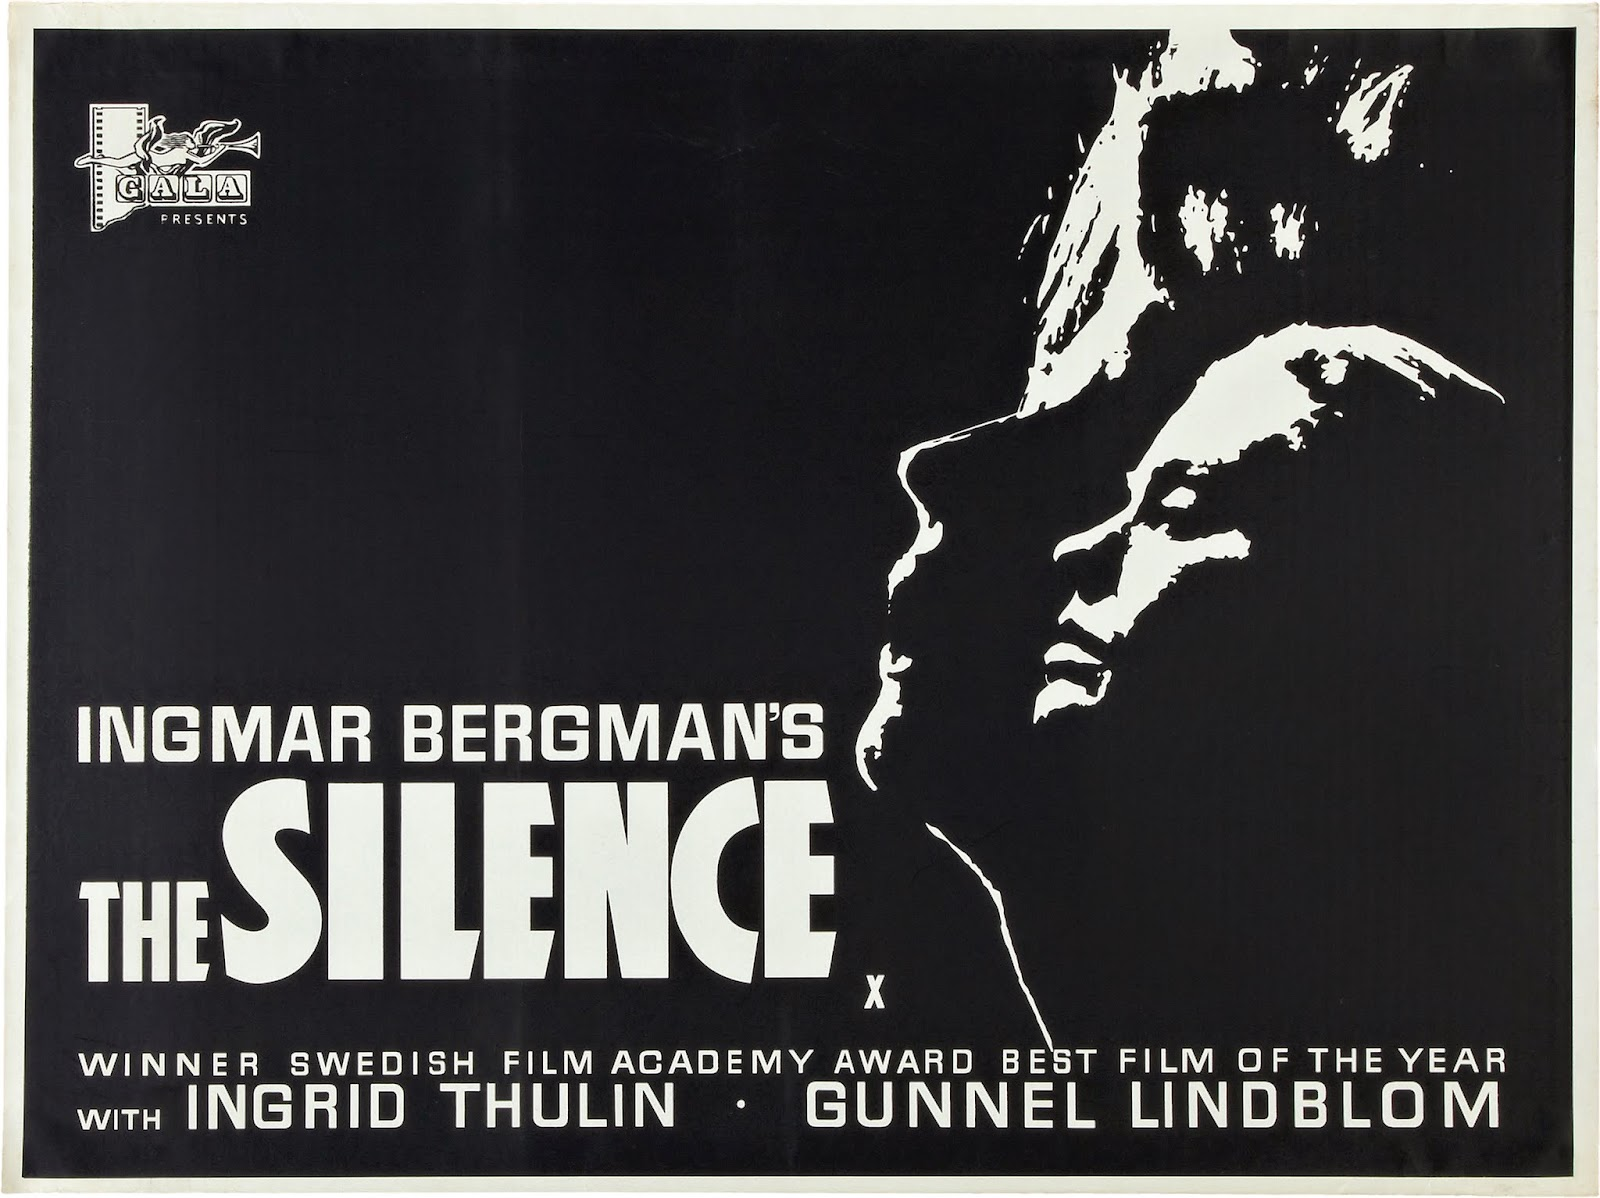 The Silence (Swedish: Tystnaden) is a 1963 Swedish drama film written and  directed by Ingmar Bergman and starring Ingrid Thulin and Gunnel Lindblom.